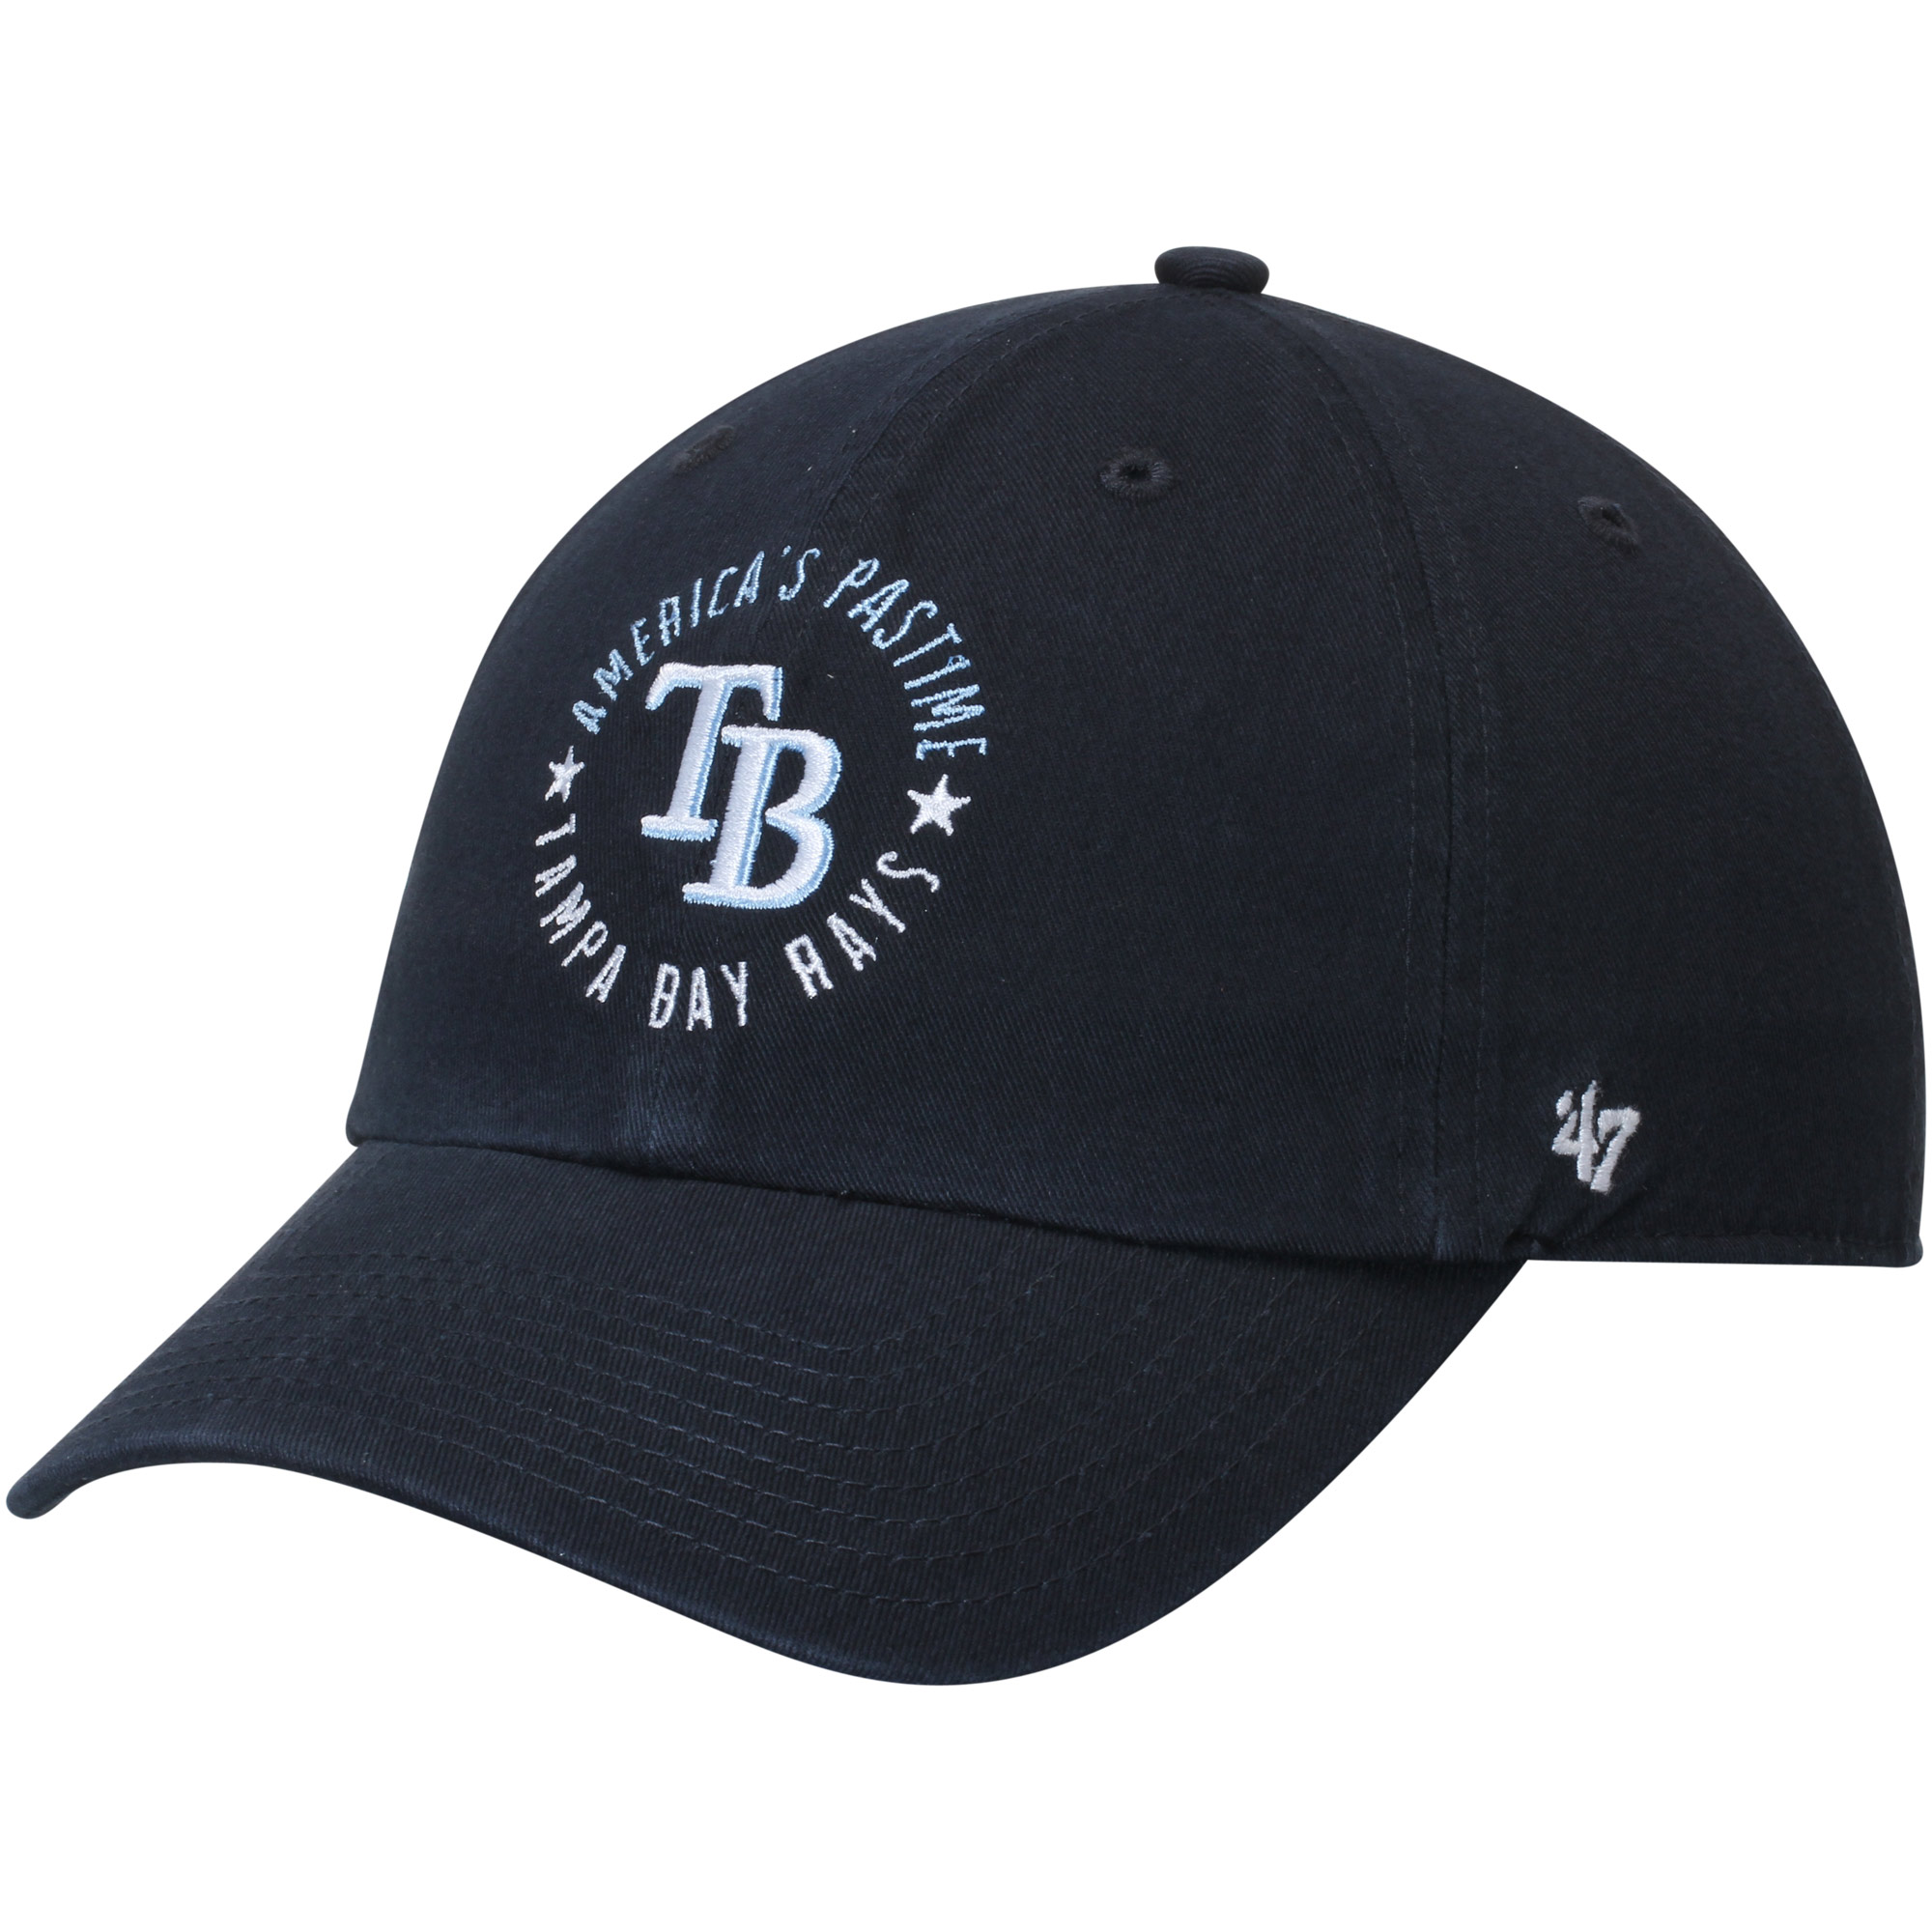 Tampa Bay Rays '47 America's Pastime MVP Replica Adjustable Hat - Navy - OSFA